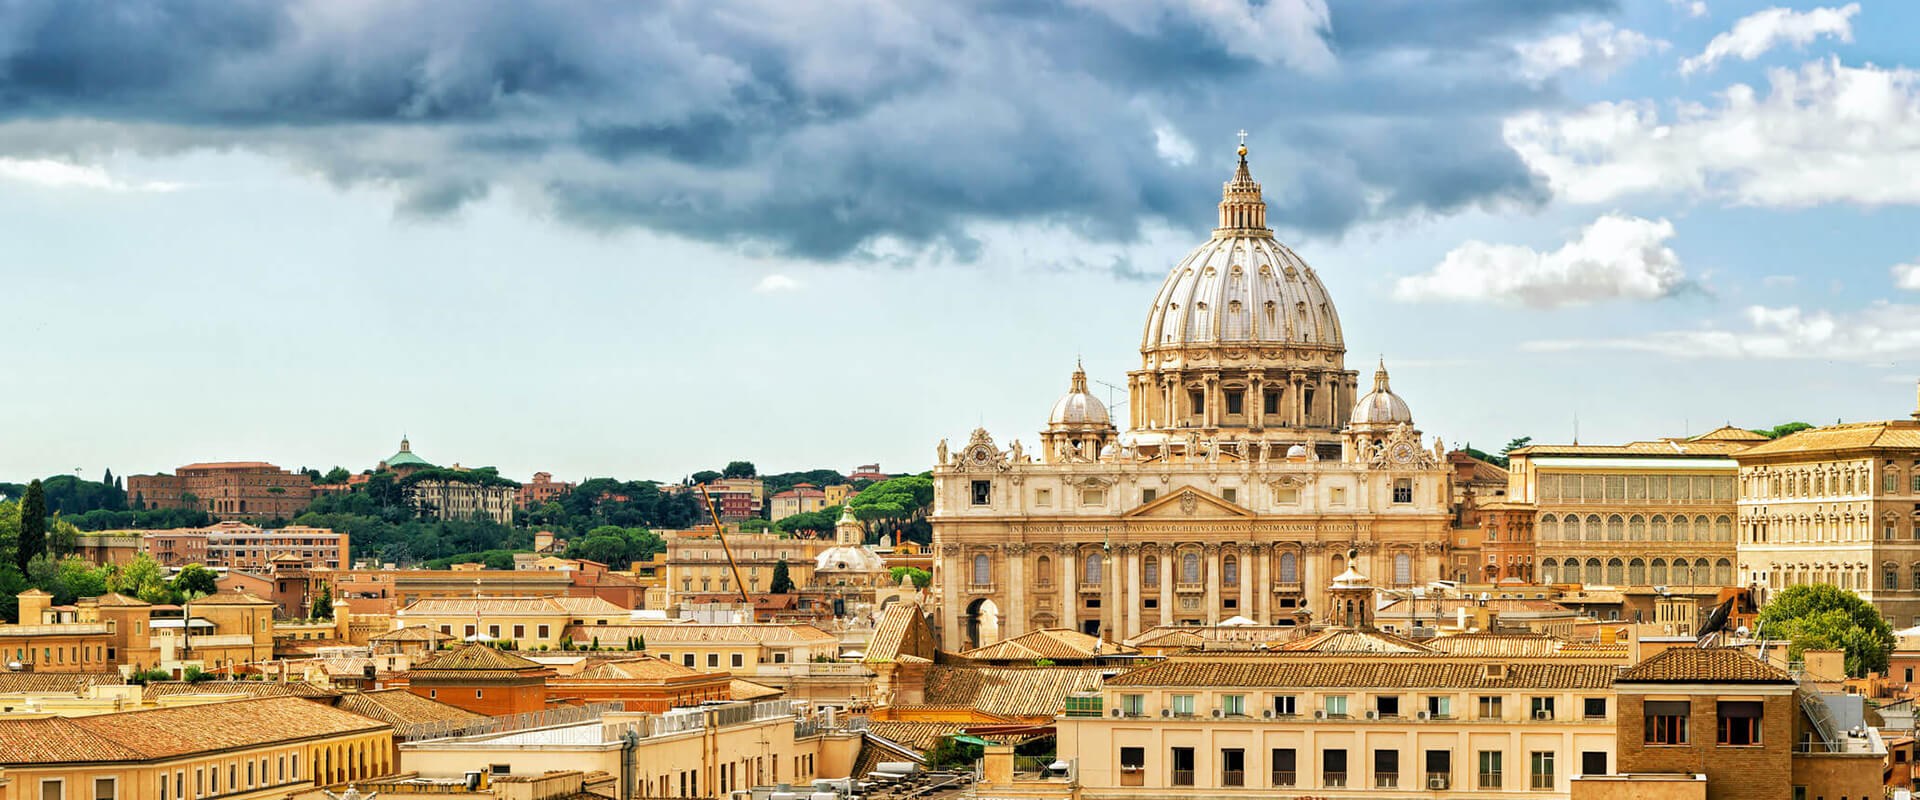 Vatican Museums Tours